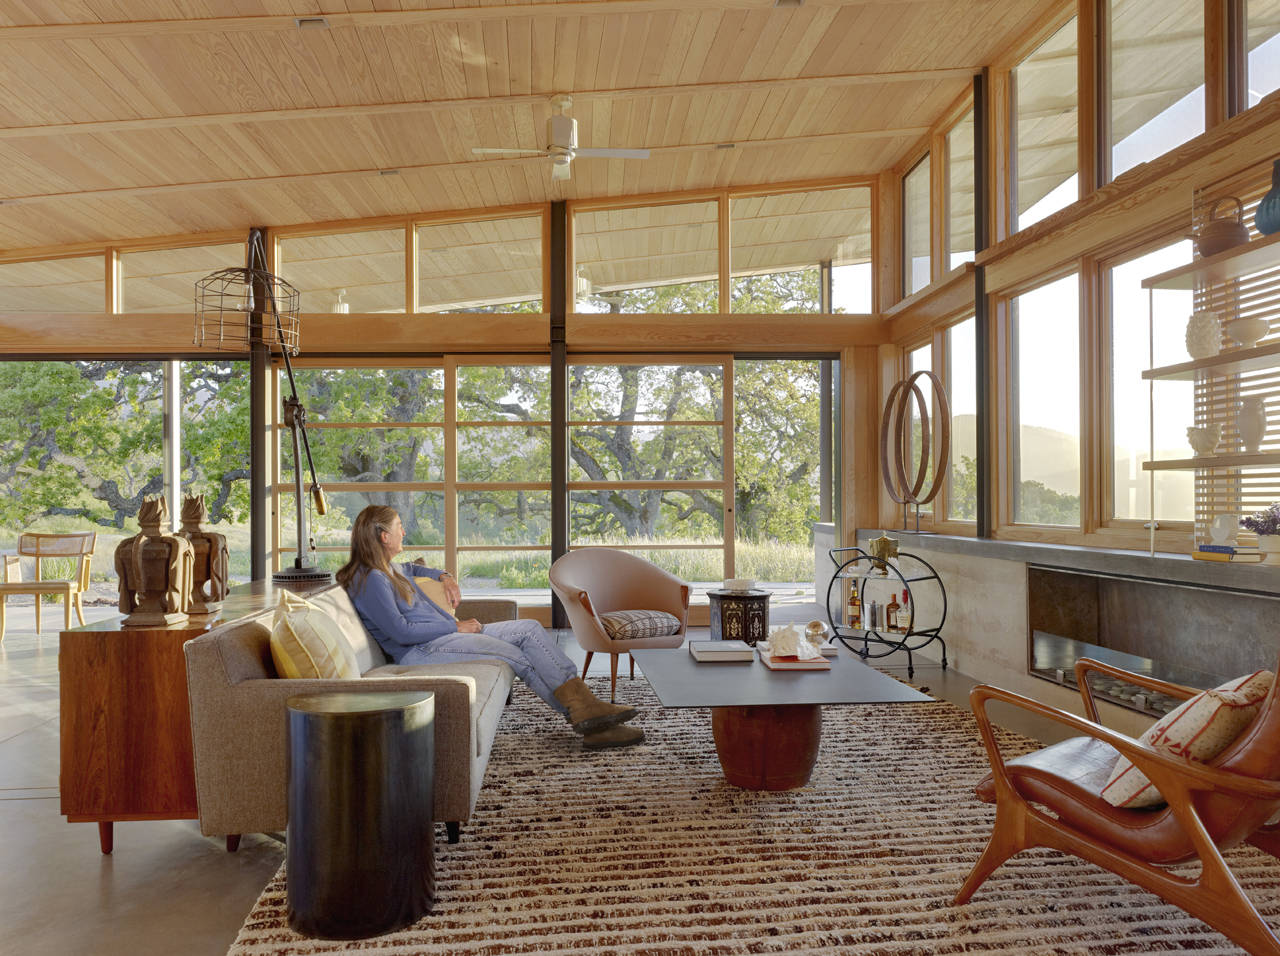 Contemporary Living Space, Caterpillar House in Carmel, California by Feldman Architecture